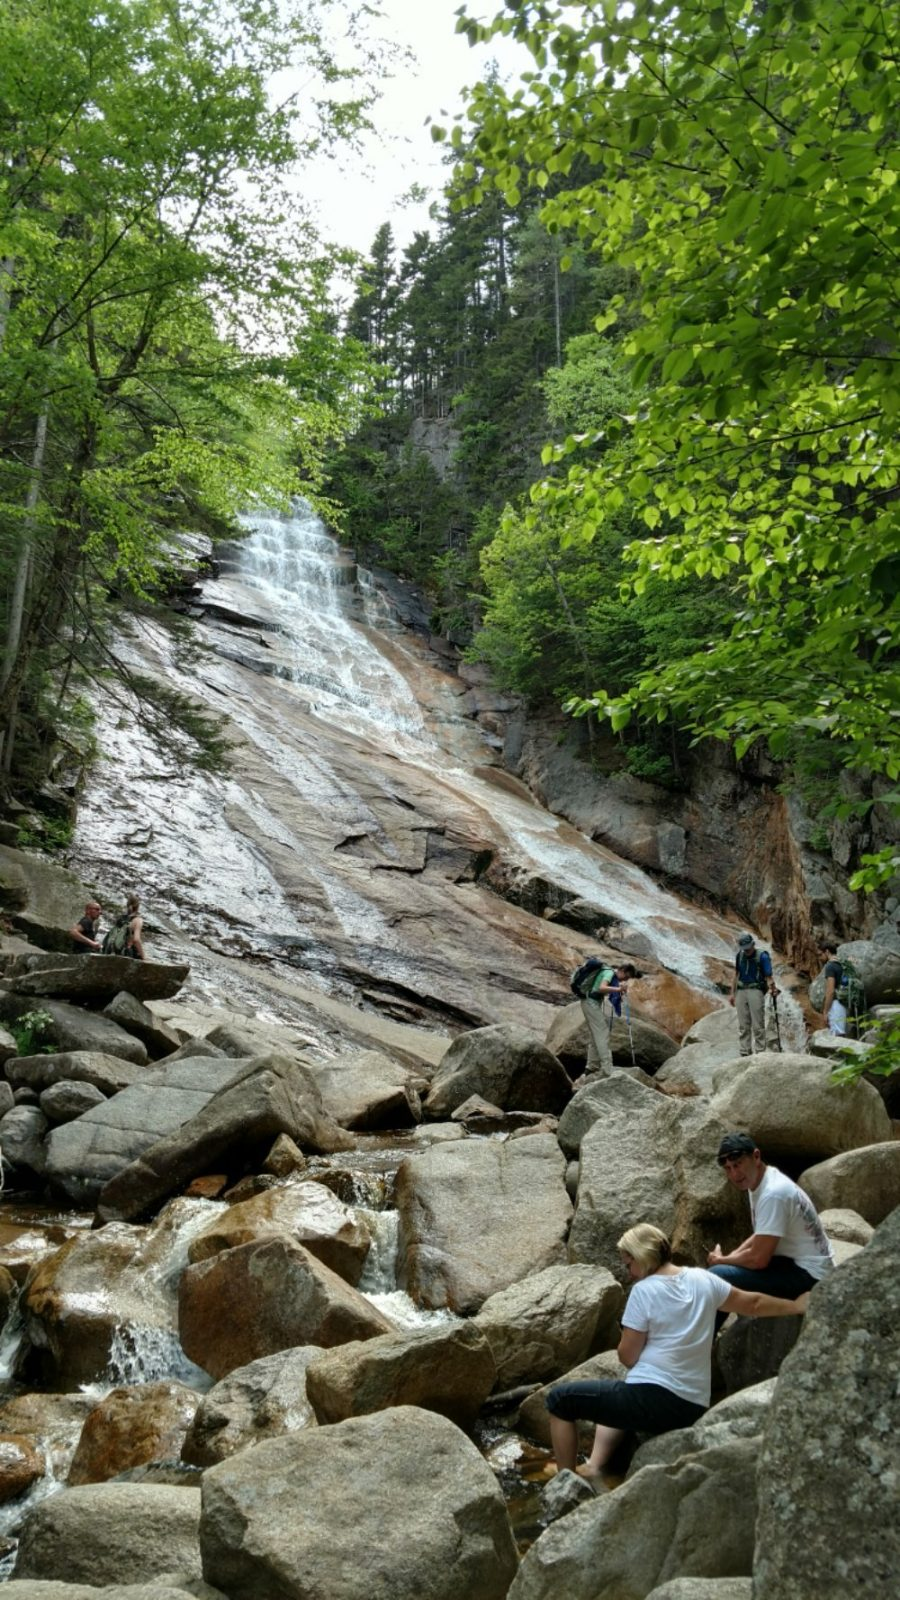 wp image 758551514 - 4 Great Waterfalls for all at Crawford Notch State Park - New Hampshire